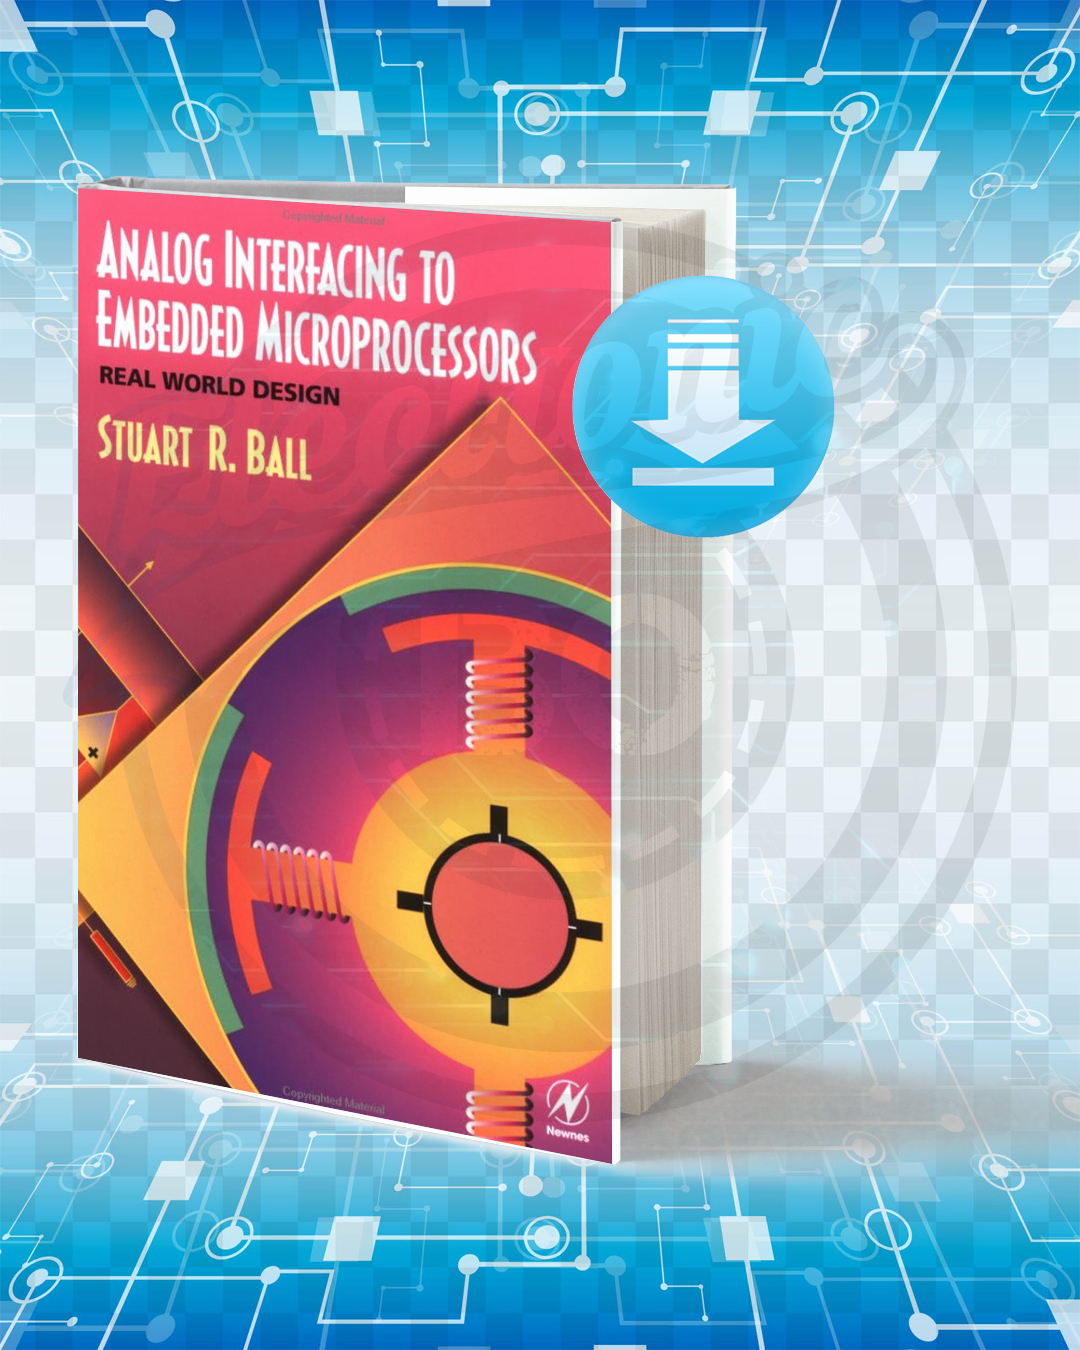 Free Book Analog Interfacing to Embedded Microprocessors pdf.